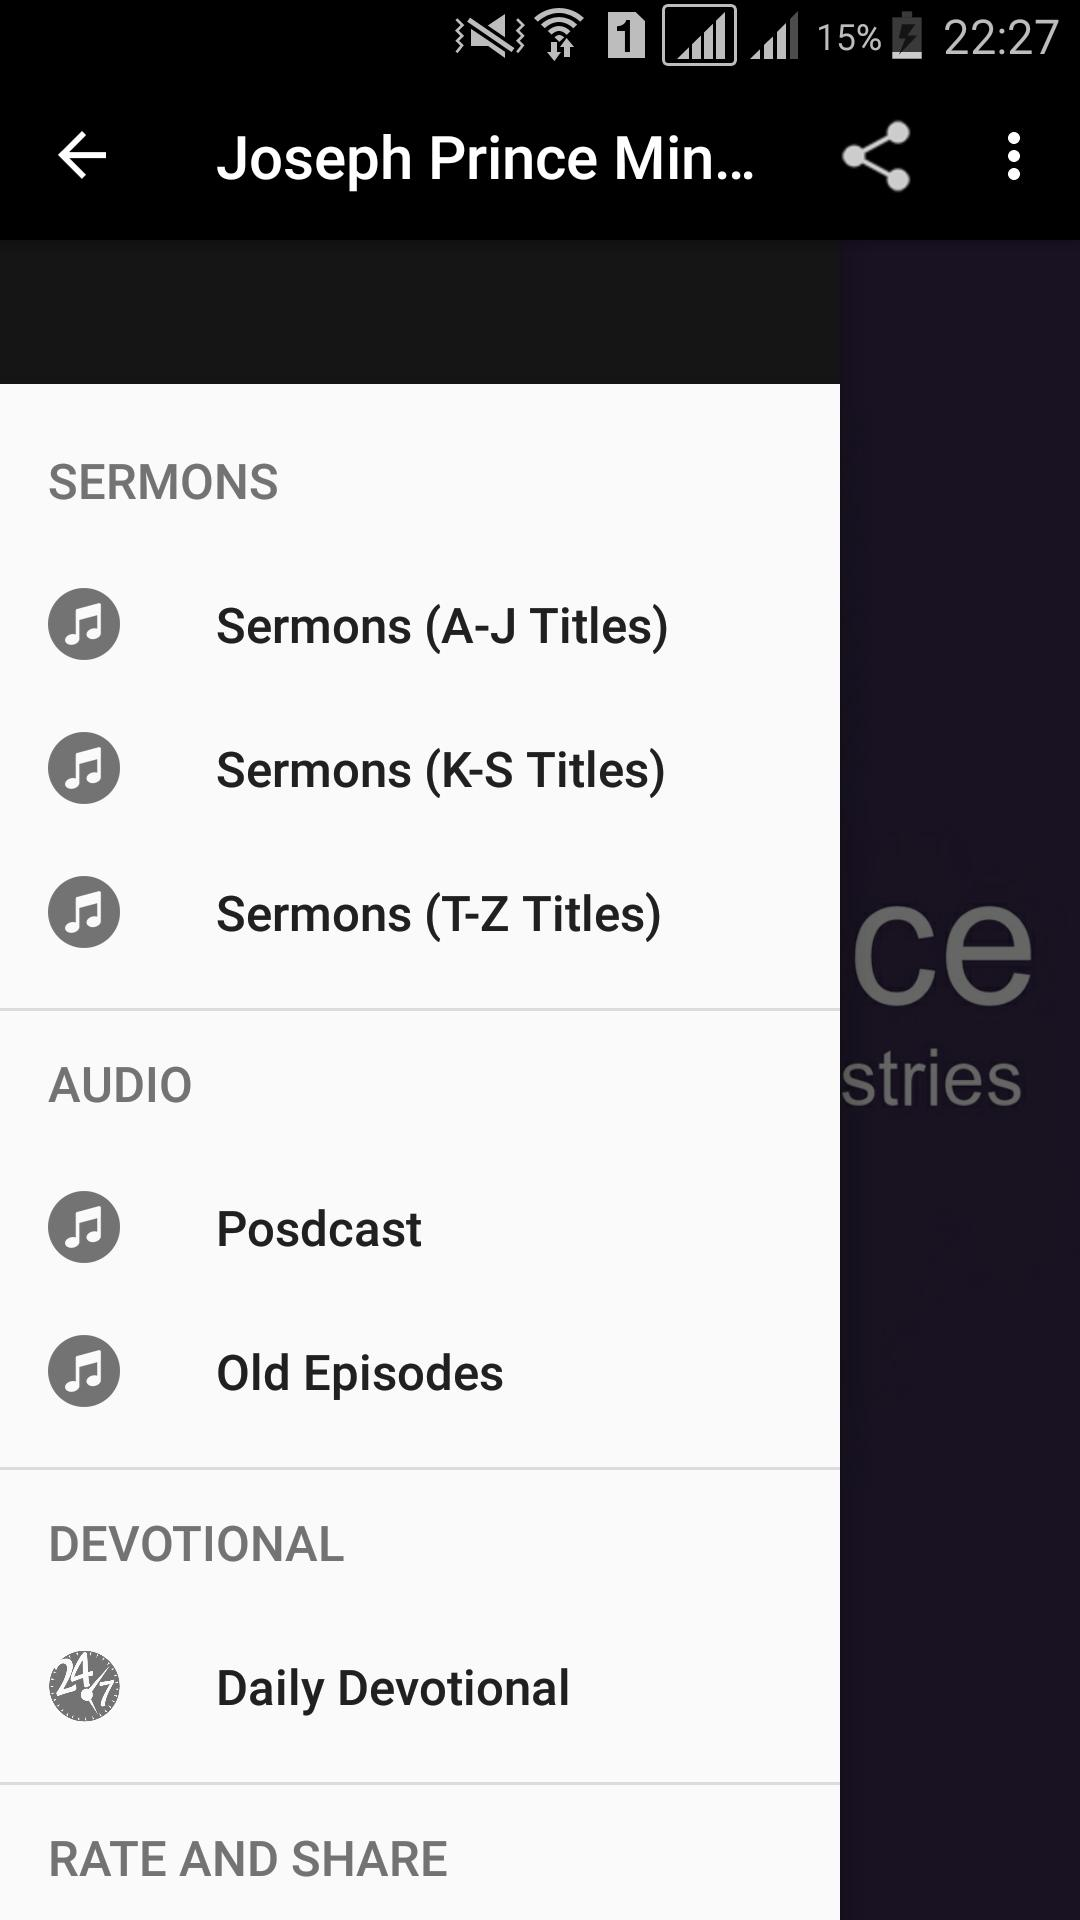 Joseph Prince Ministries for Android - APK Download